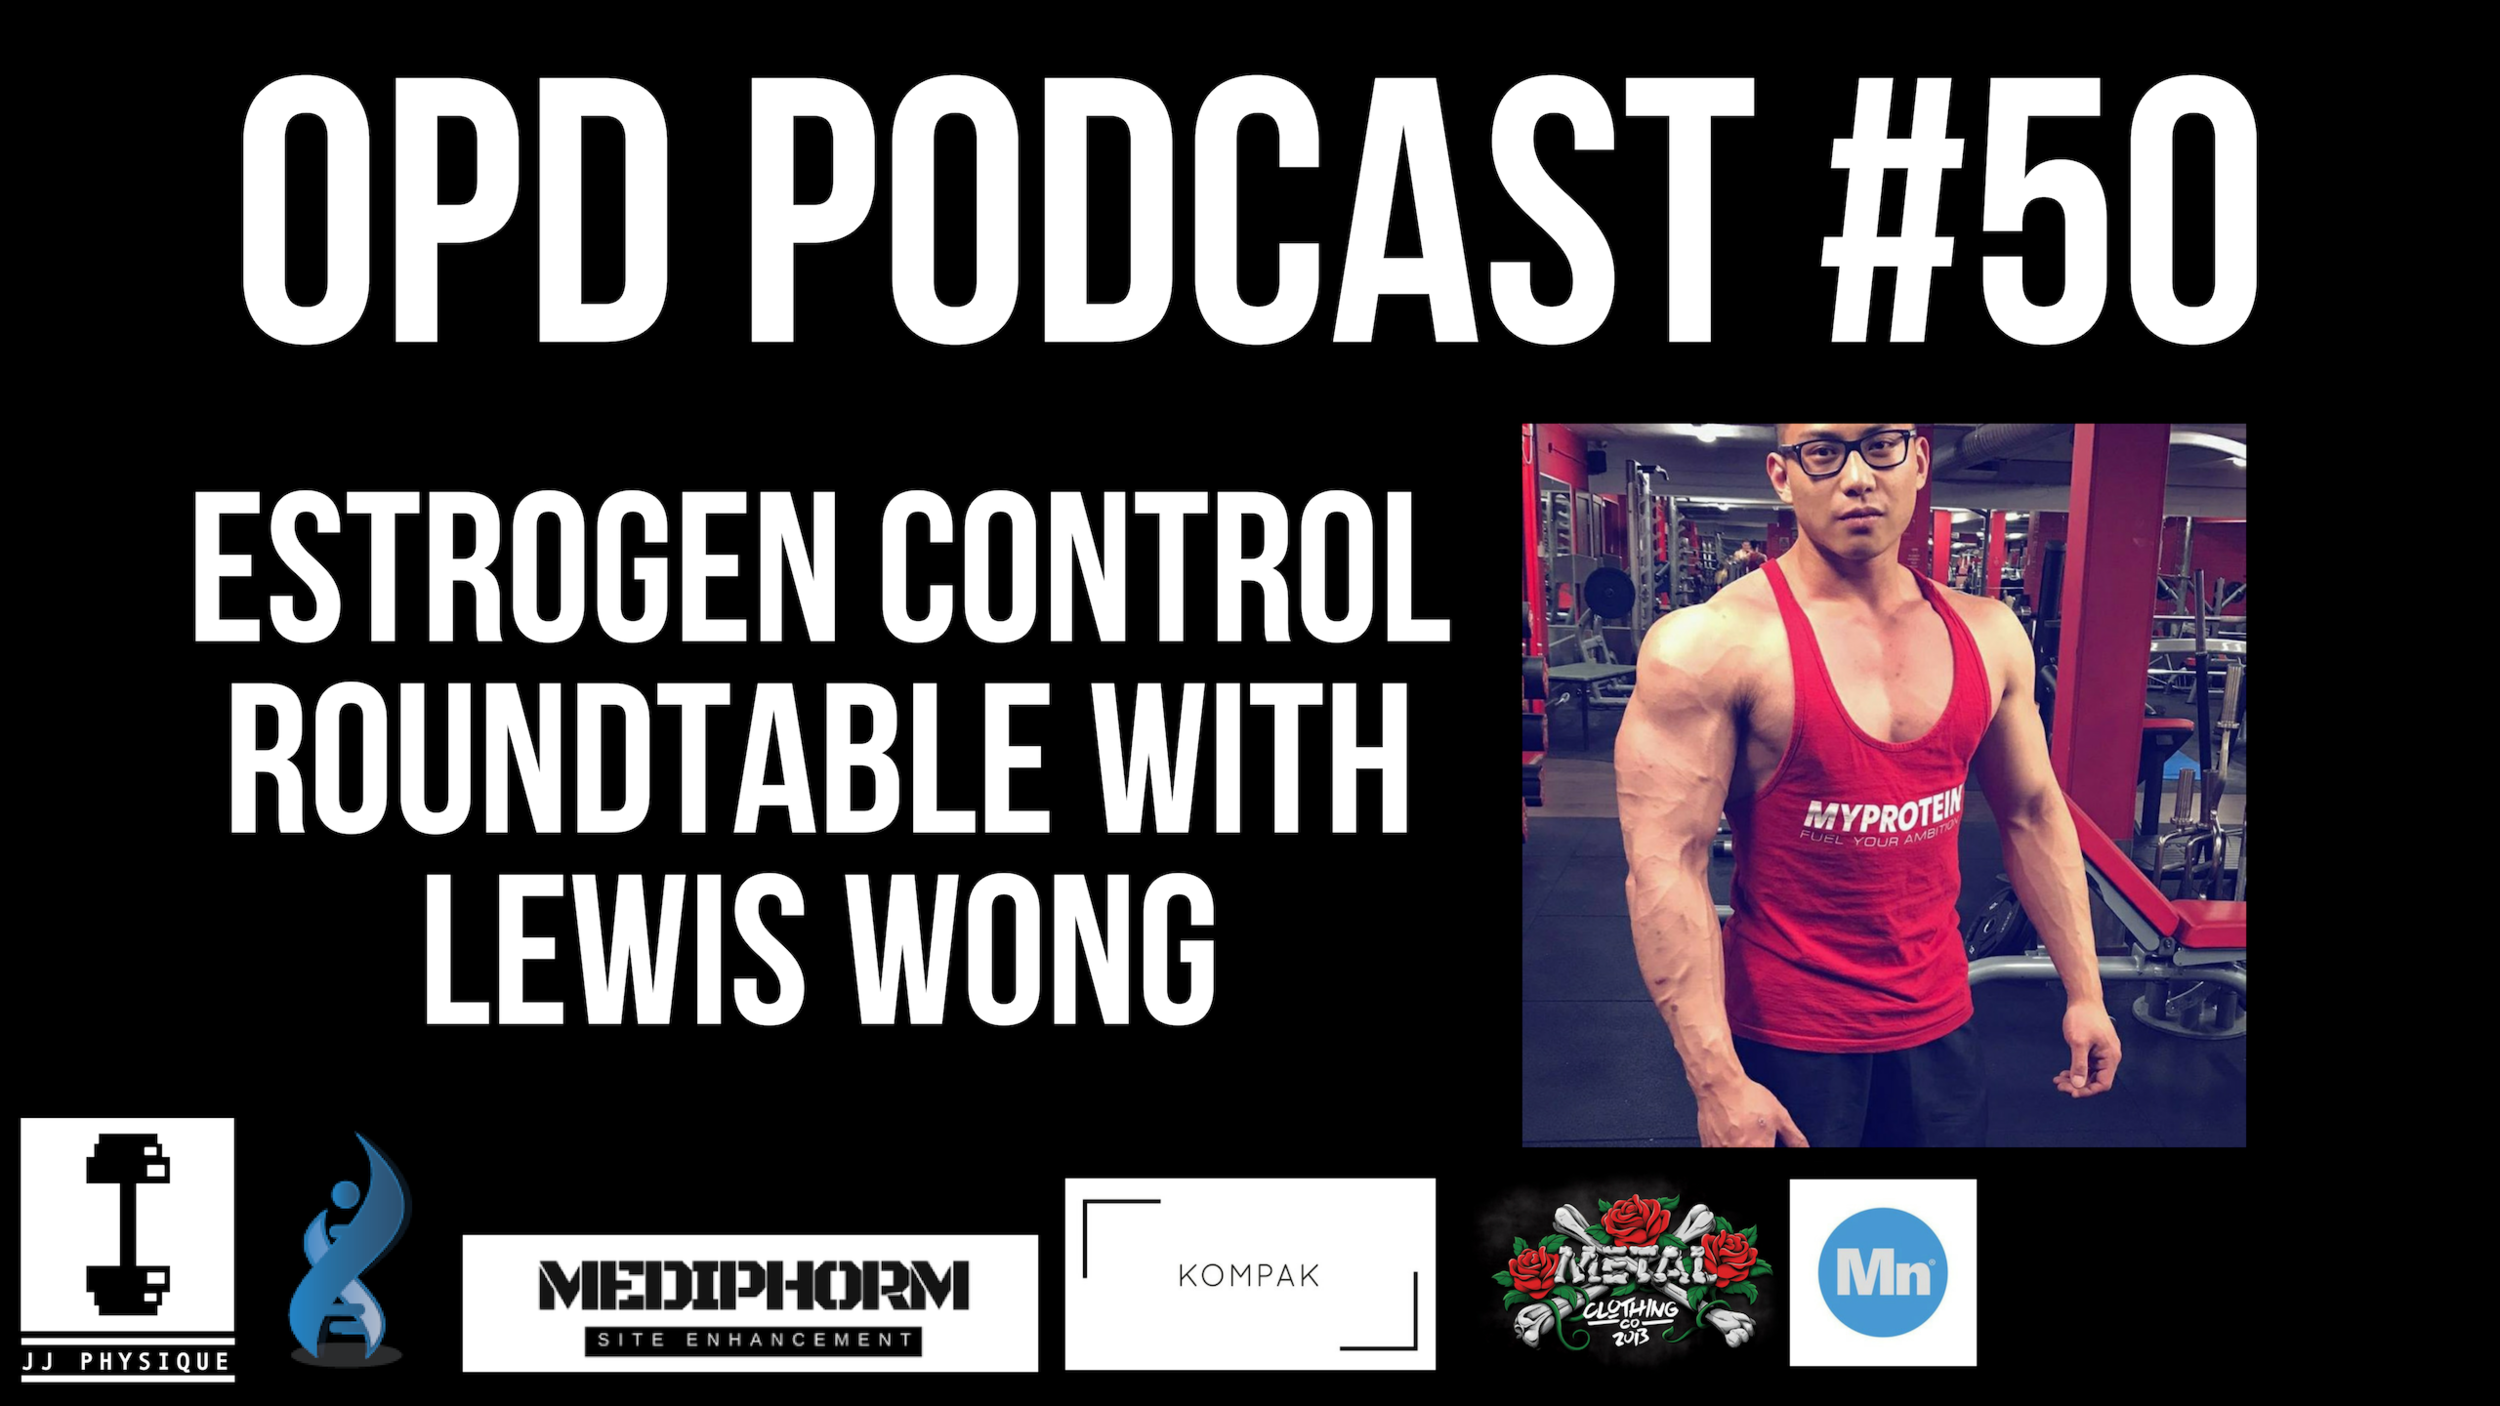 OPTIMAL PHYSIQUE DEVELOPMENTPODCAST (32).png